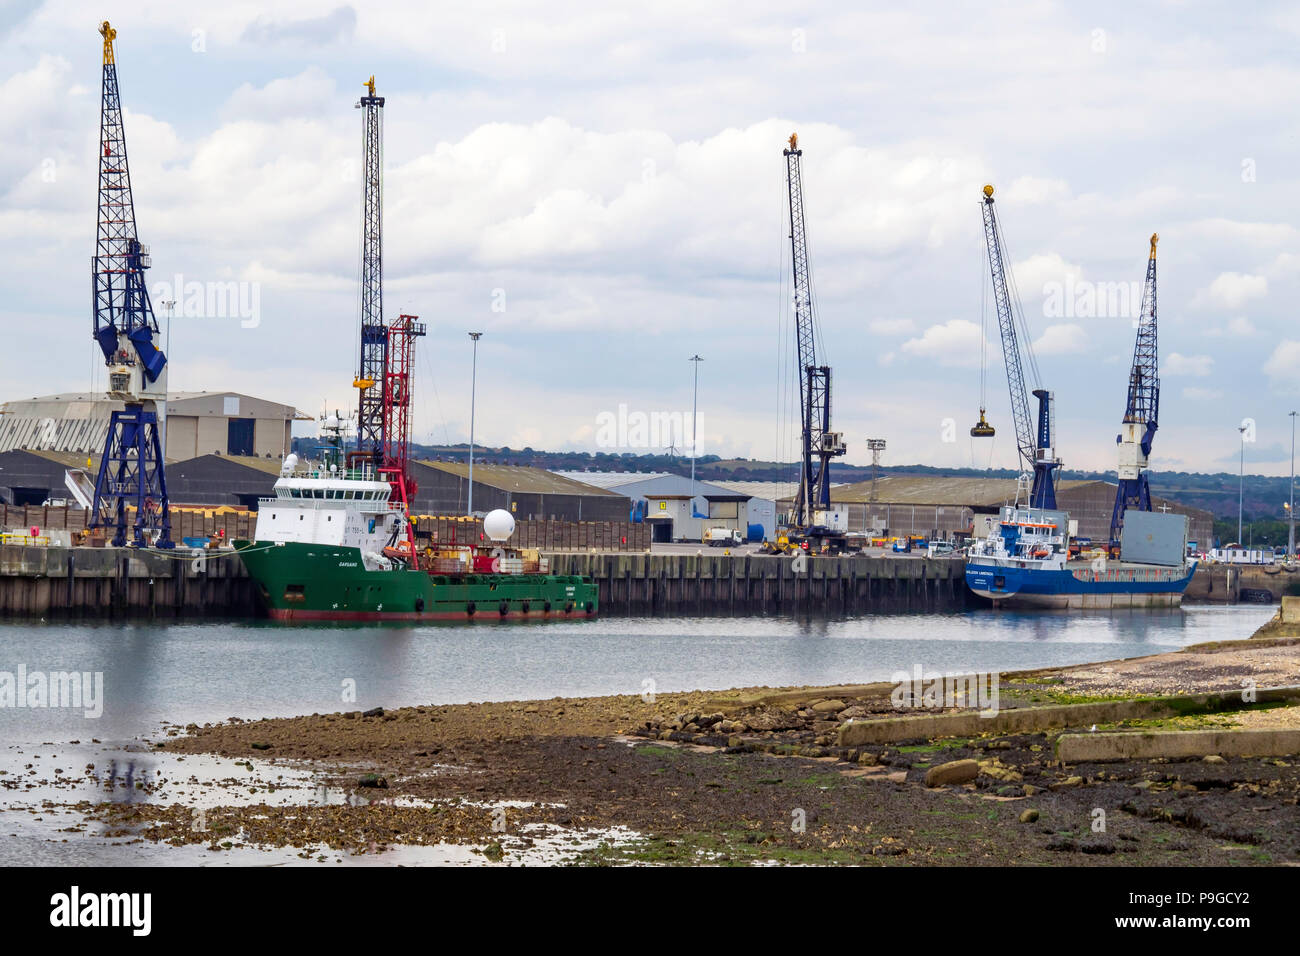 Offshore Supply Vessel GARGANO and General Cargo vessel WiILSON LIMERICK moored at Irvines Quay in Hartlepool Harbour Durham England UK - Stock Image